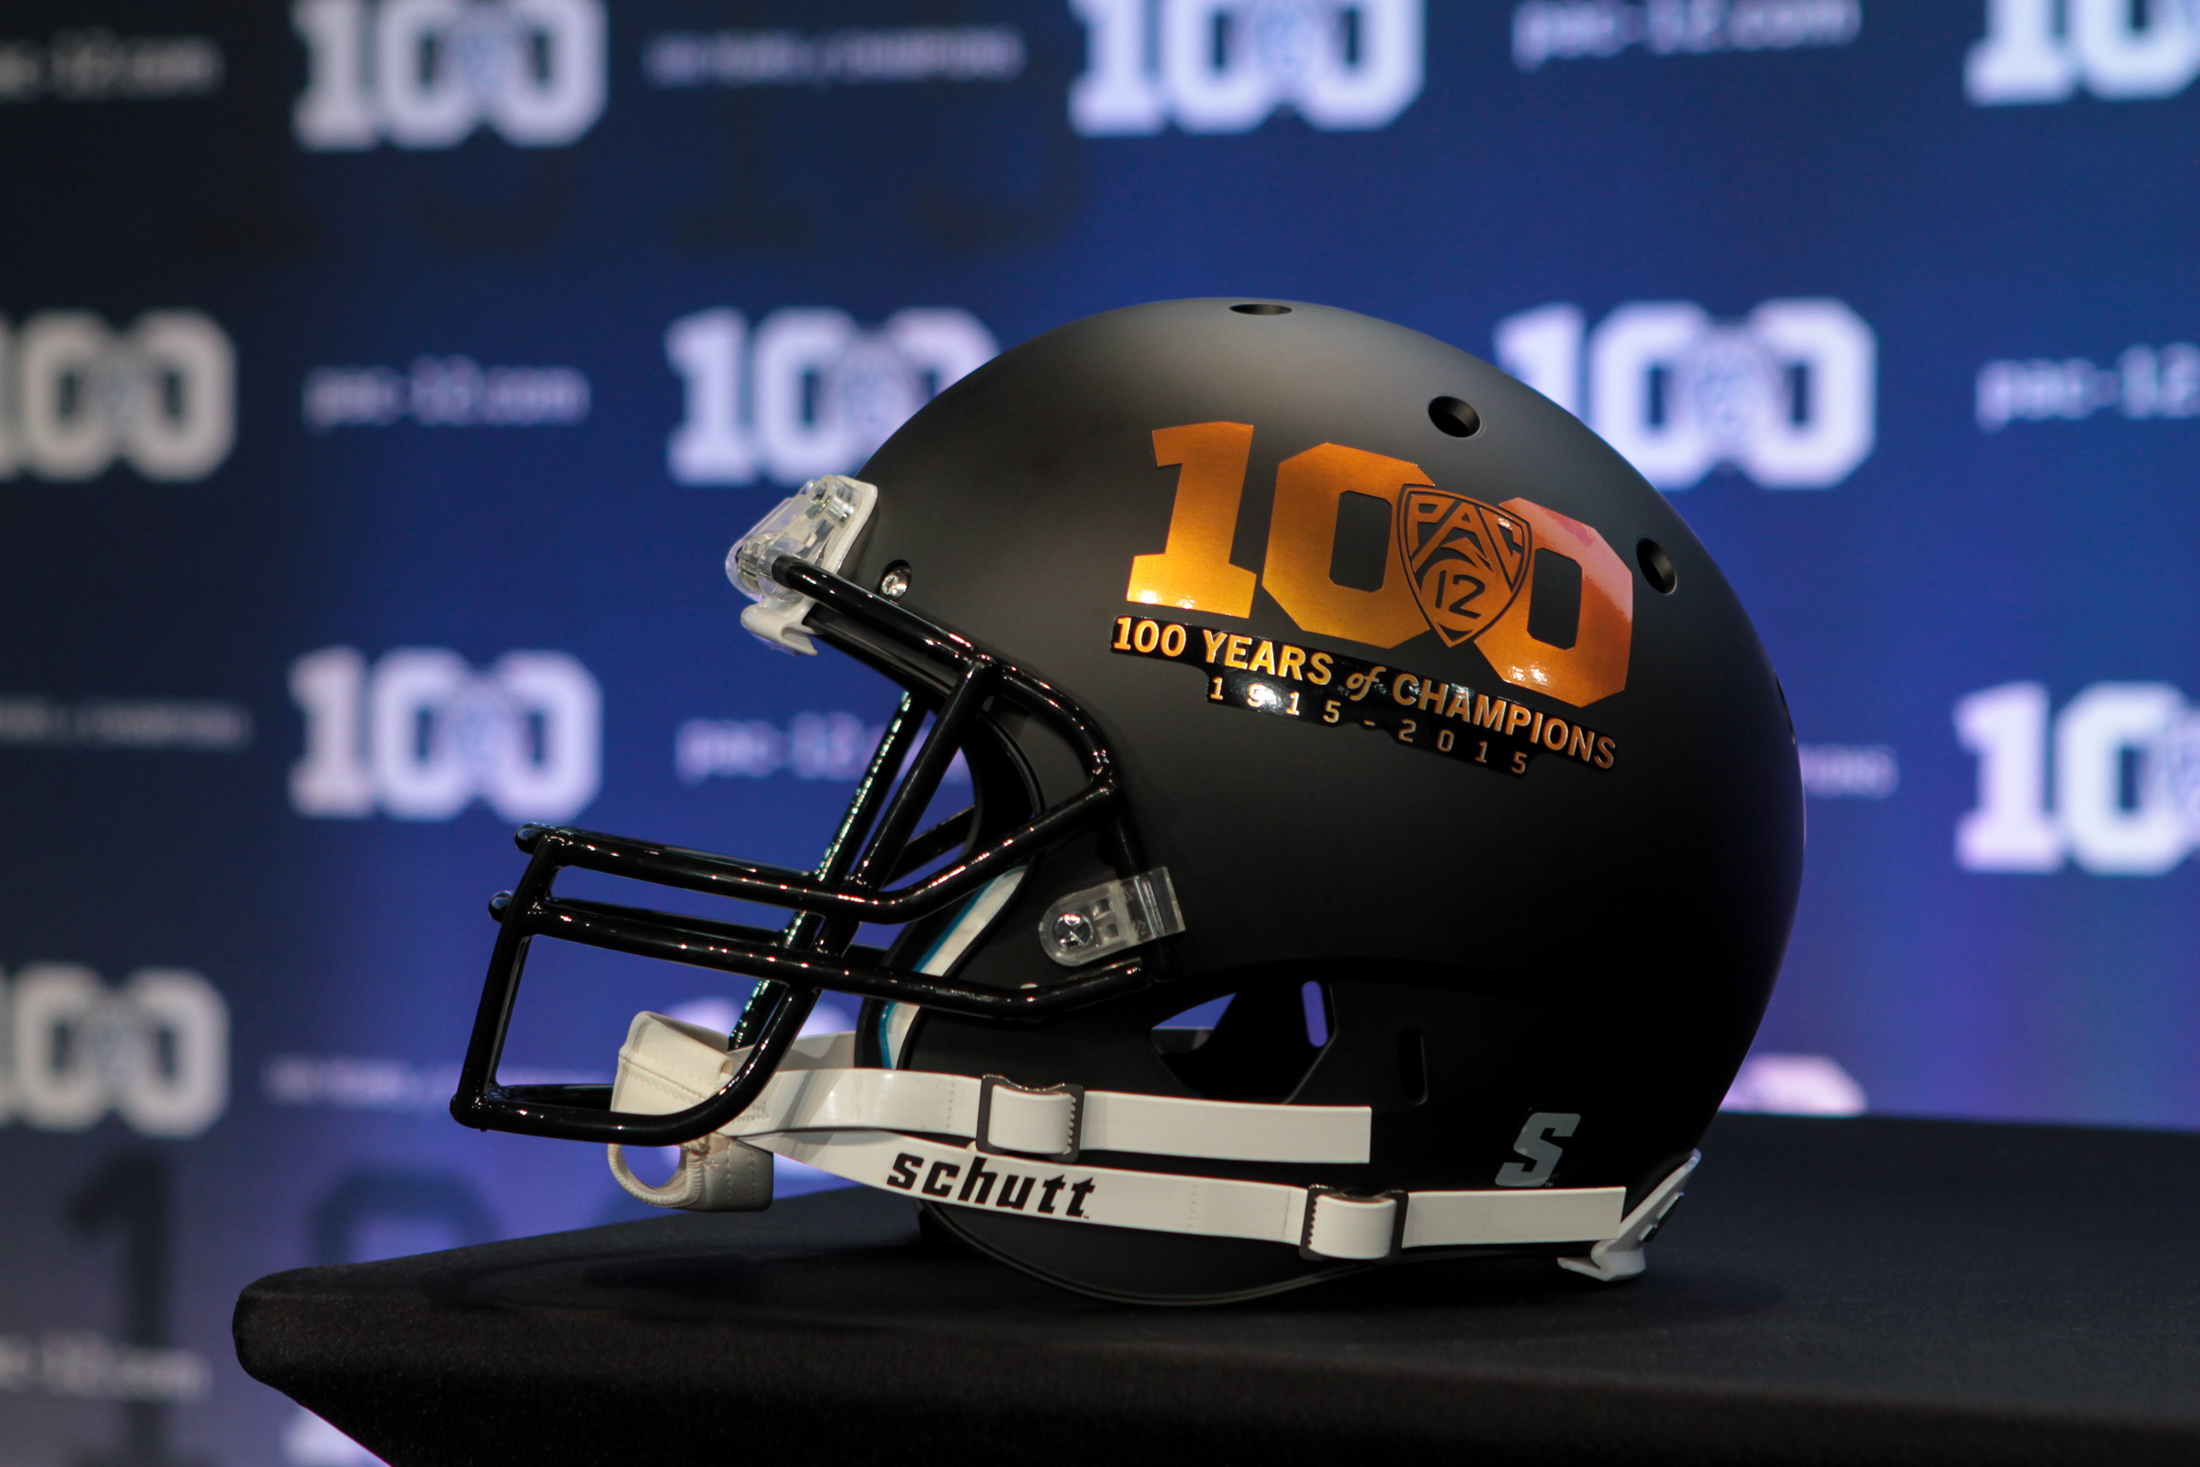 PAC-12 Conference 100 years of Champions